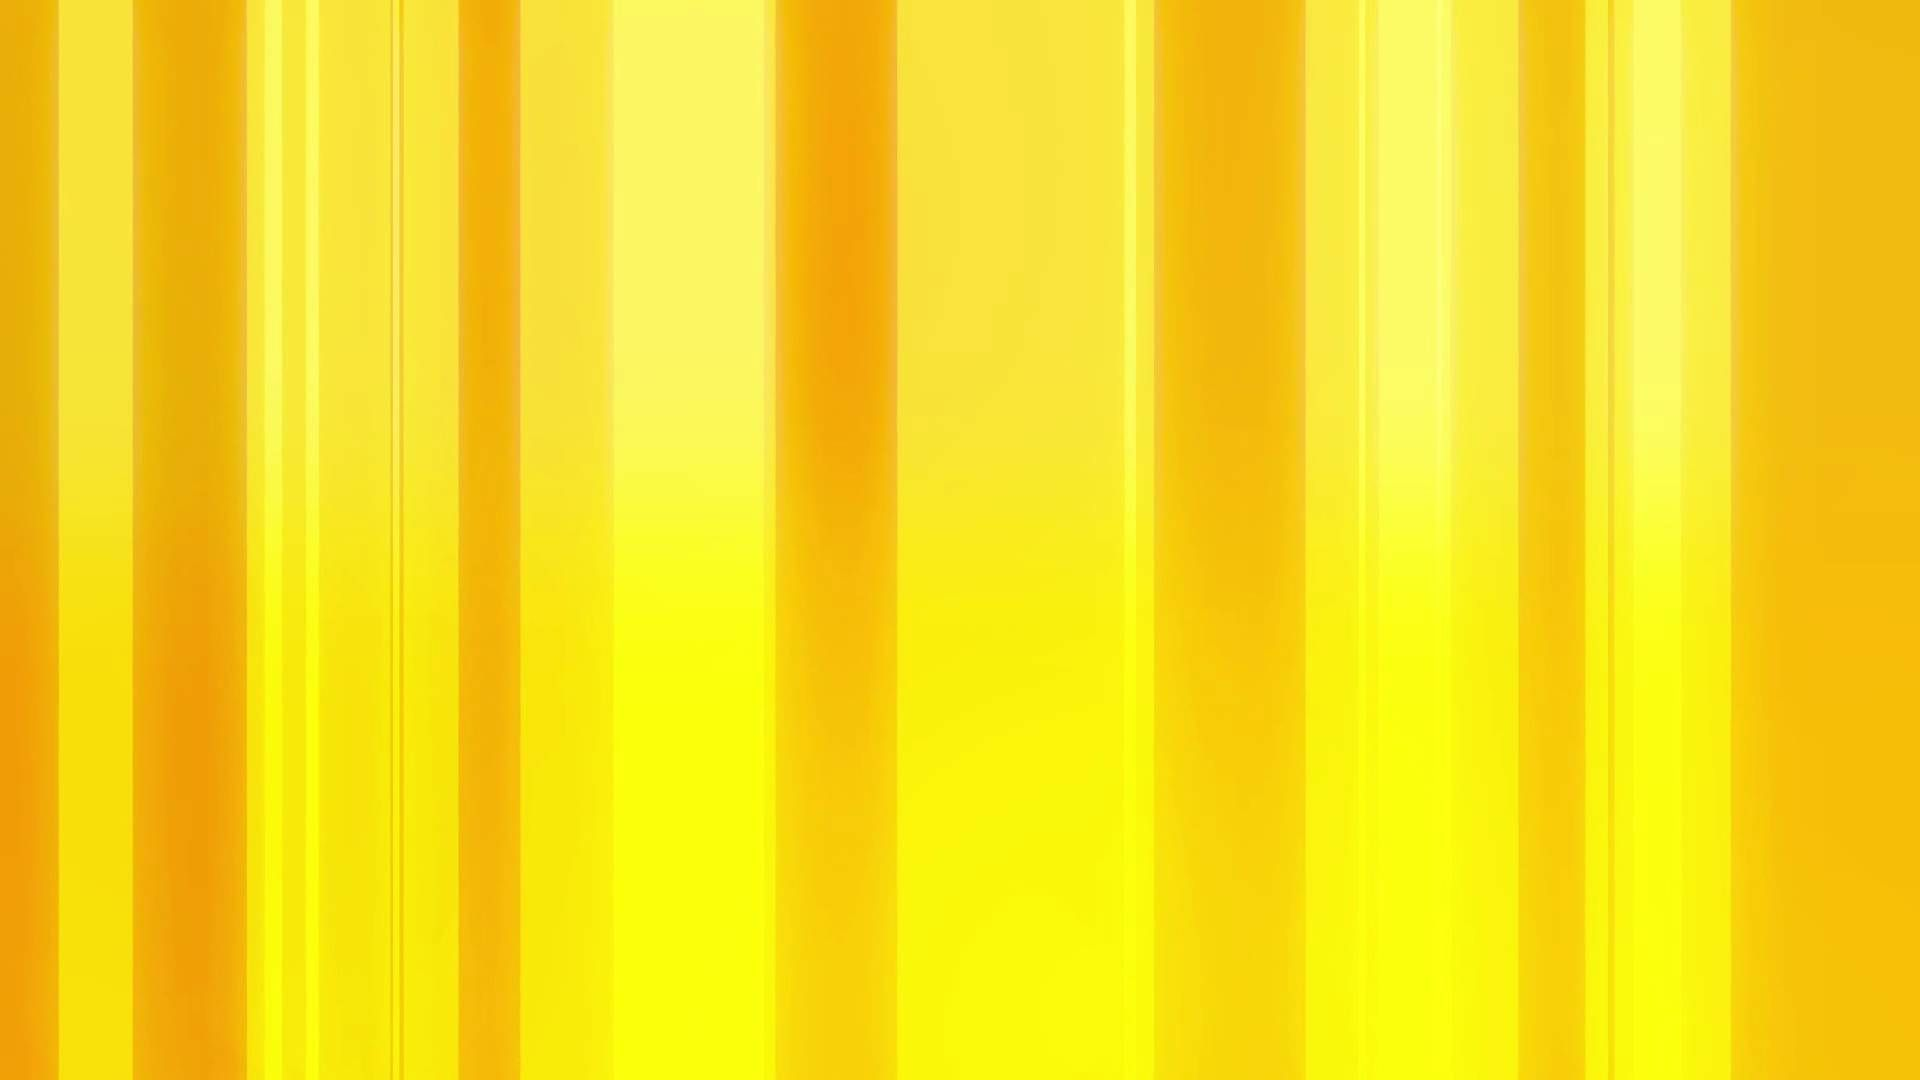 Yellow backgrounds image wallpaper hd wallpapers pinterest yellow backgrounds image wallpaper altavistaventures Choice Image